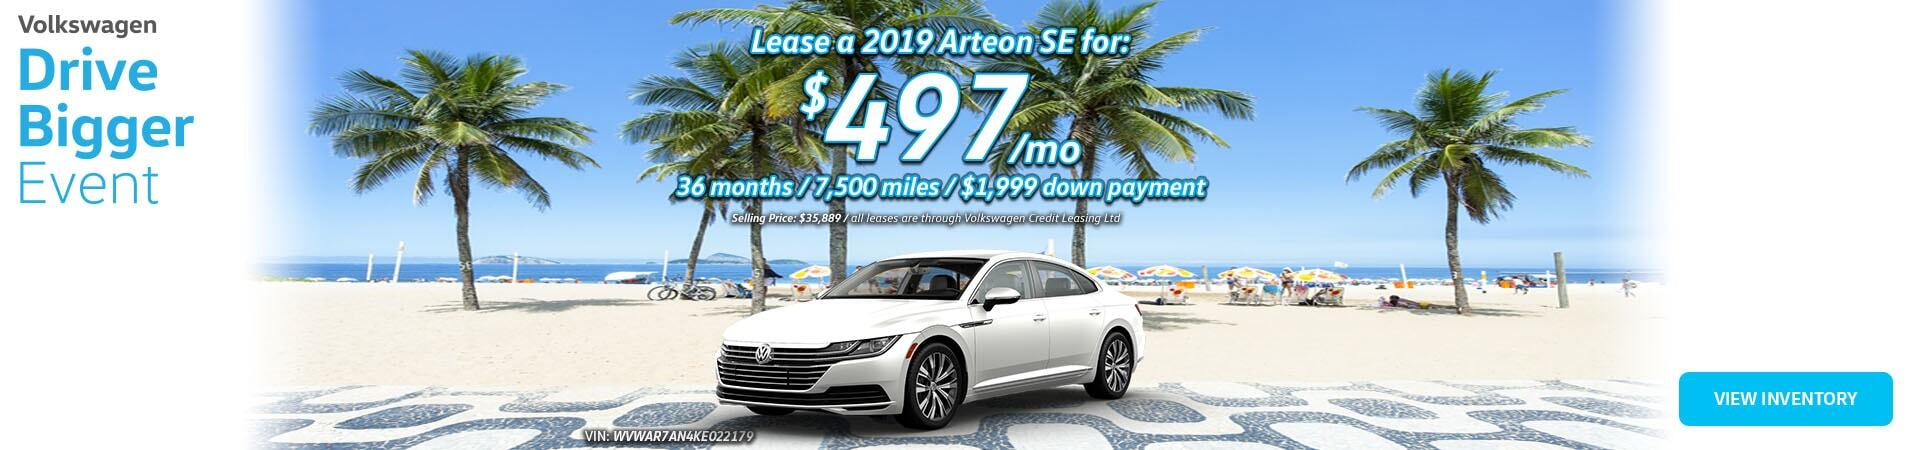 July Arteon SE Slide